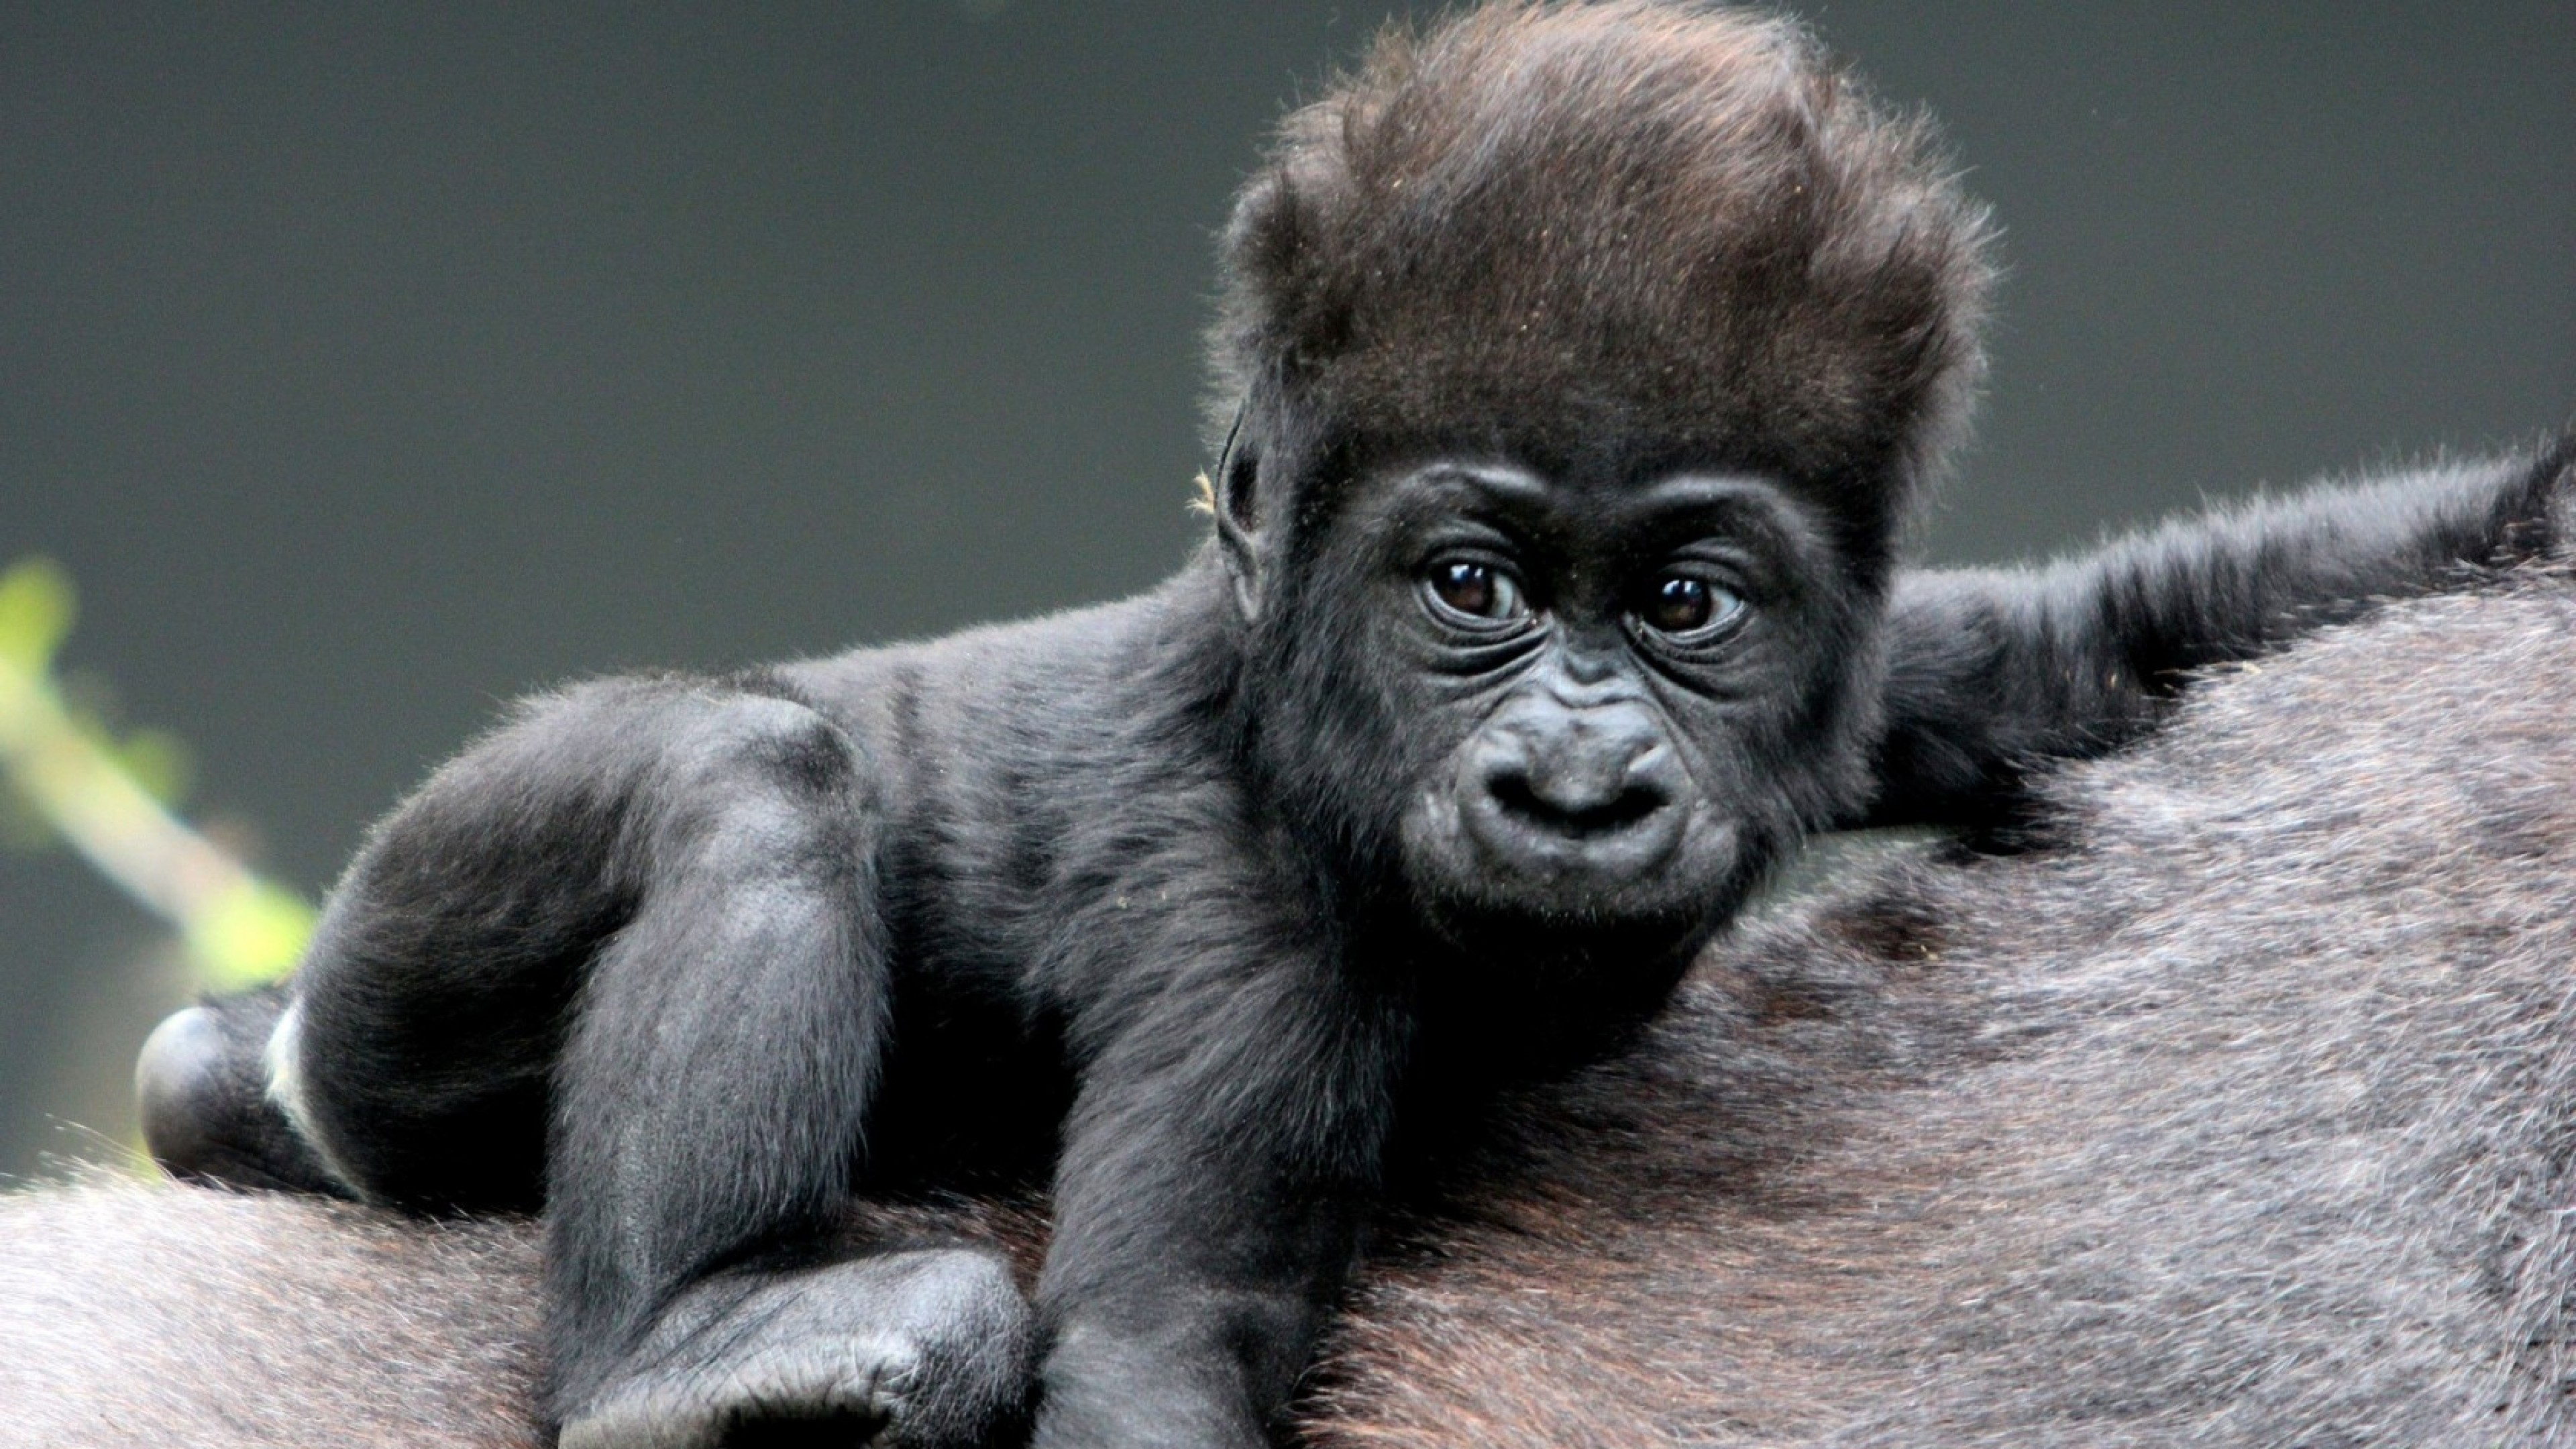 3840x2160 File Name: baby-gorilla-wallpaper-1.jpg